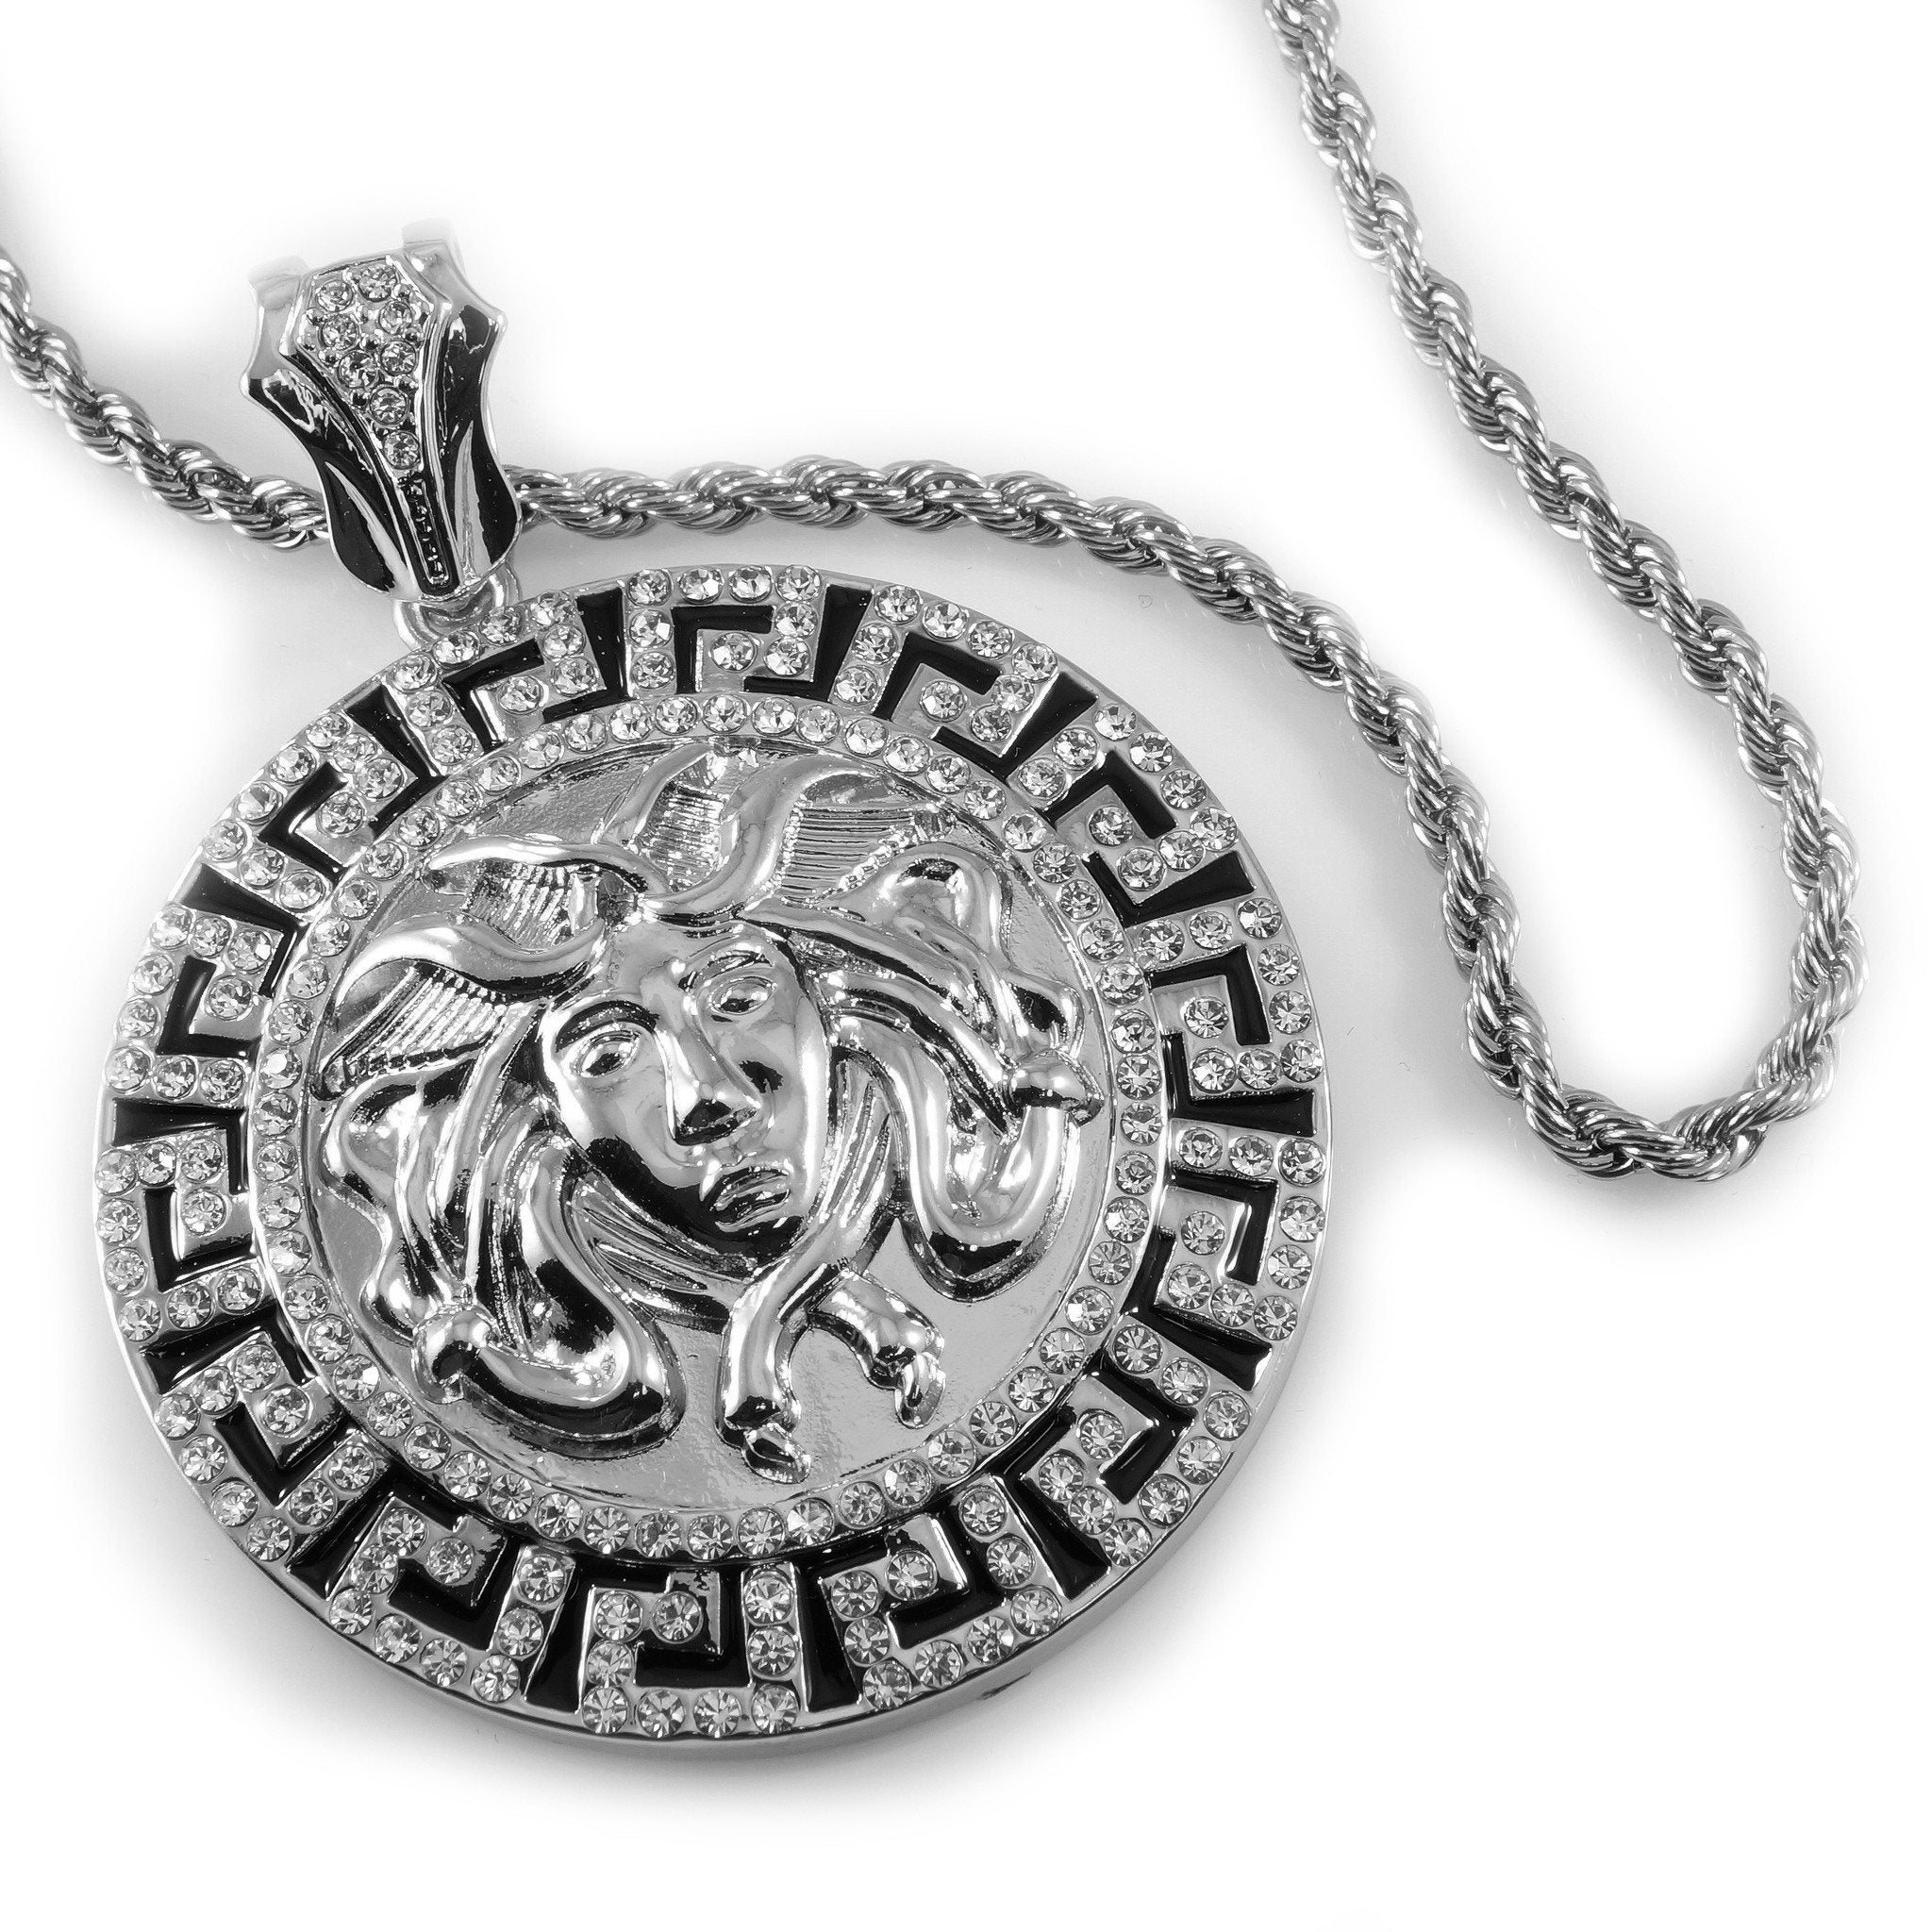 14k White Gold Iced Out Medusa Pendant With Chain